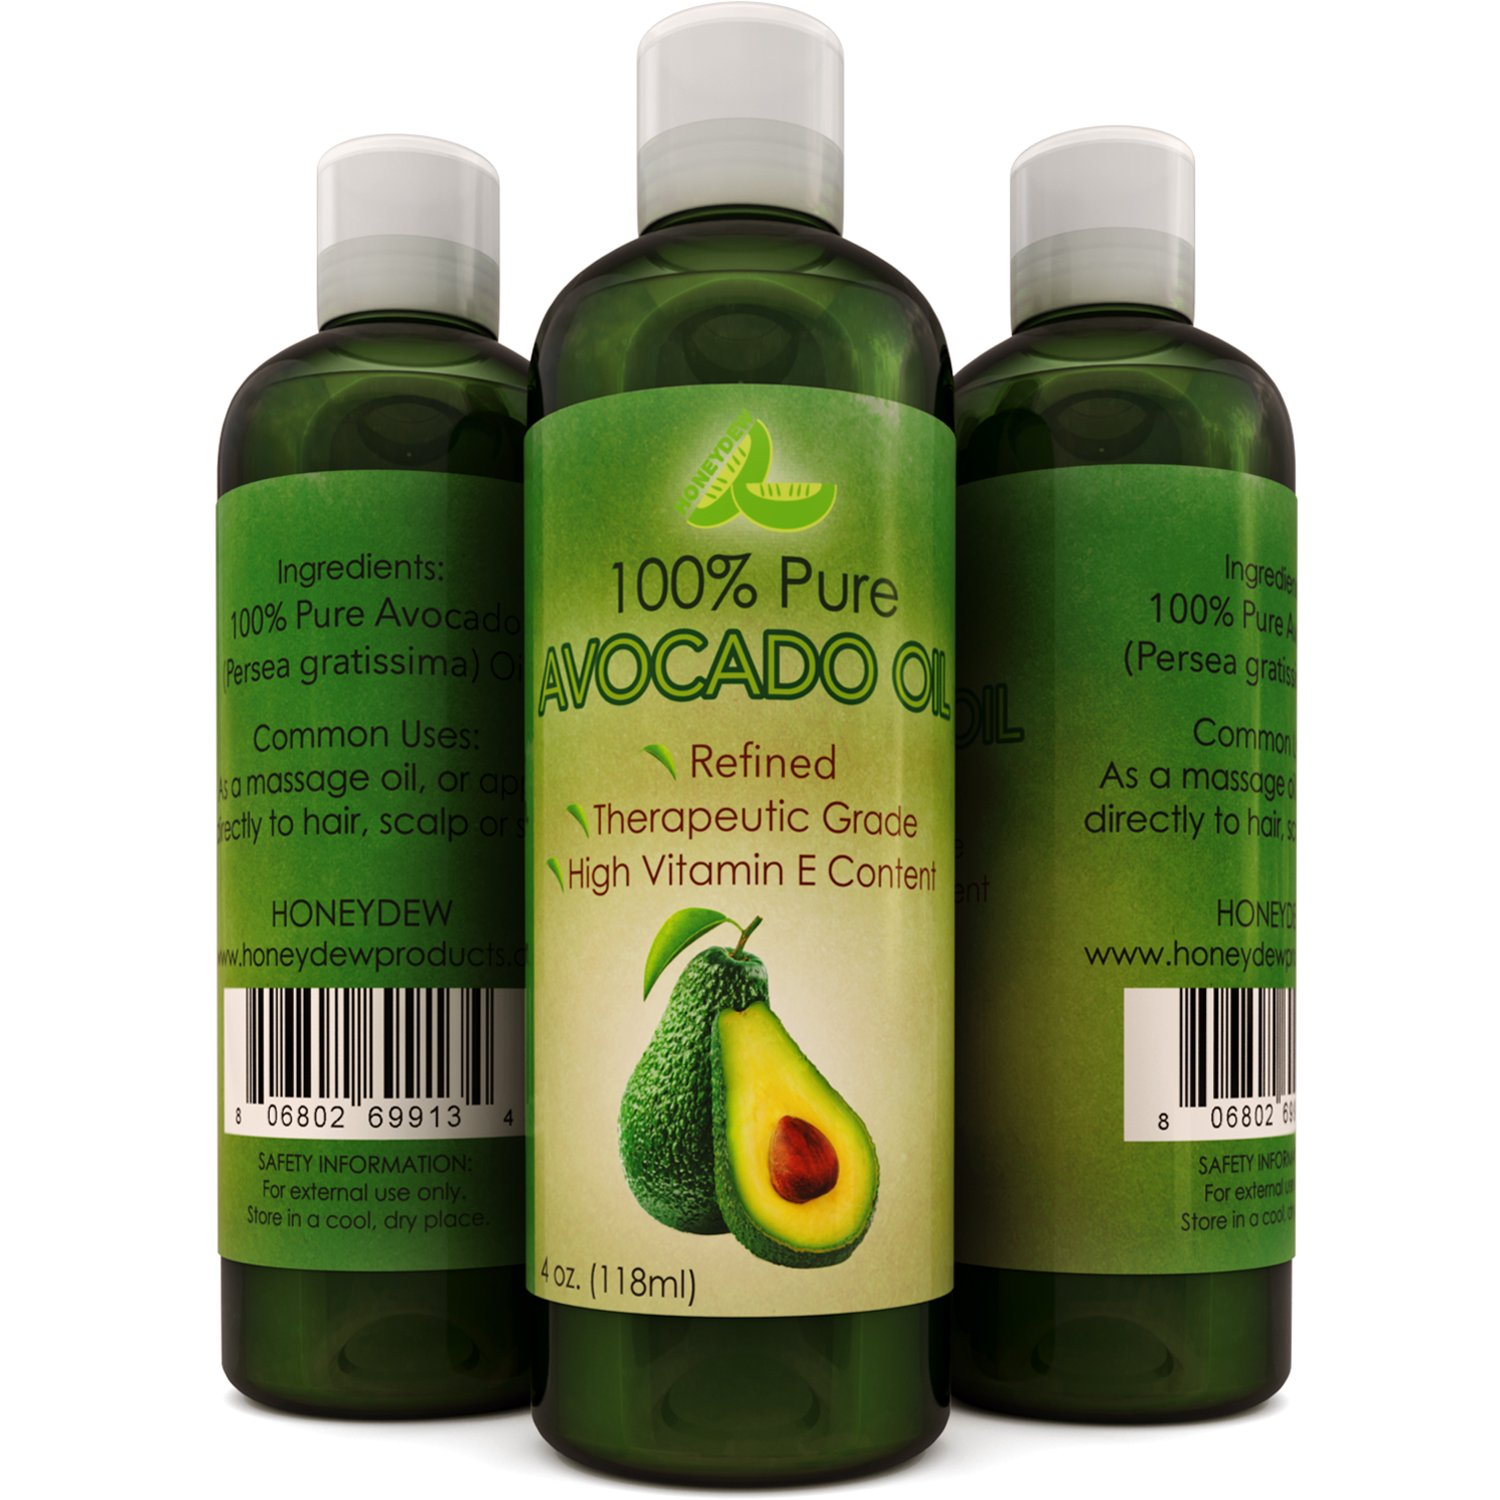 Avocado Oil For Hair Skin Nails Cold Pressed Antioxidant Nutrient Rich Oil Great as Massage Oil Anti-Aging Anti-Wrinkle Skin Care Shiny Hair